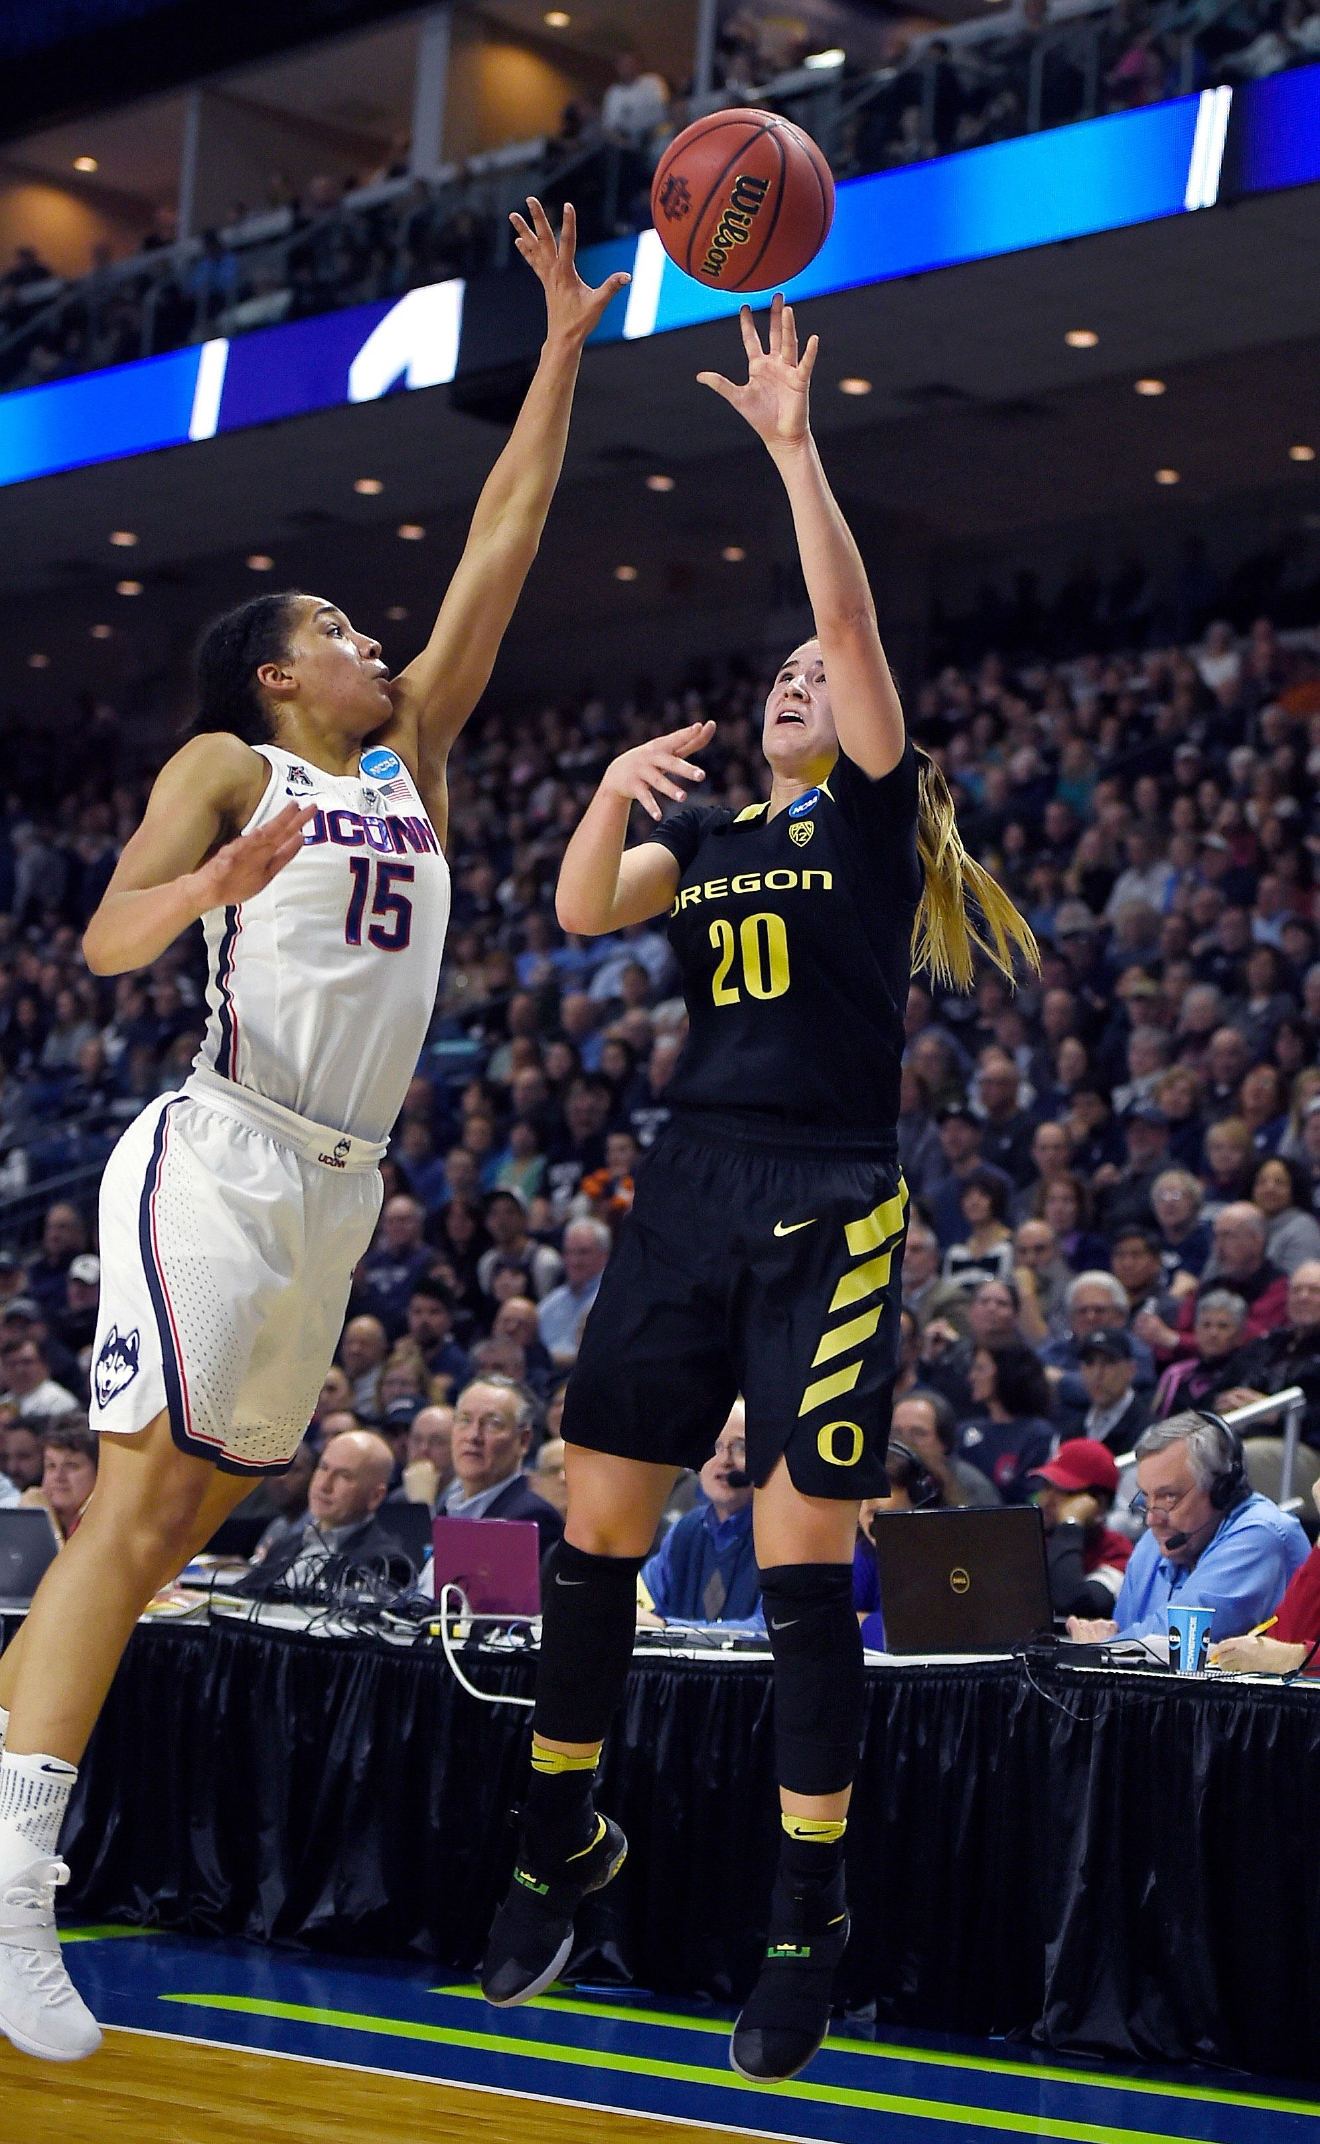 Oregon's Sabrina Ionescu, right, shoots over Connecticut's Gabby Williams during the first half of a regional final game in the NCAA women's college basketball tournament, Monday, March 27, 2017, in Bridgeport, Conn. (AP Photo/Jessica Hill)